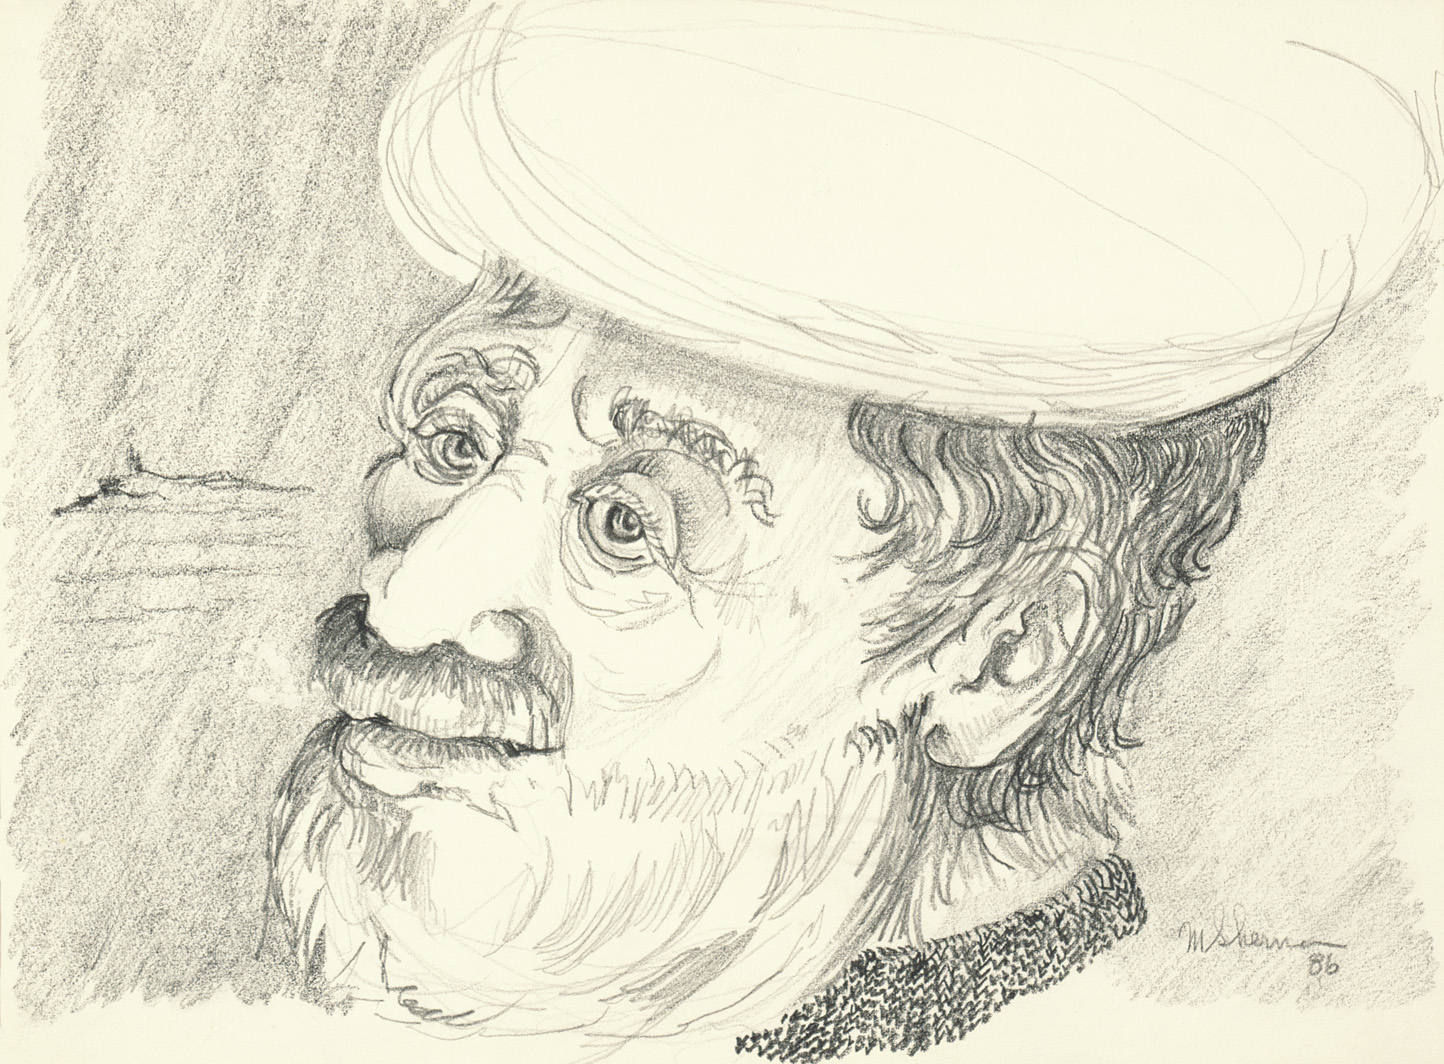 sherman 63 man with hat 14x19A2